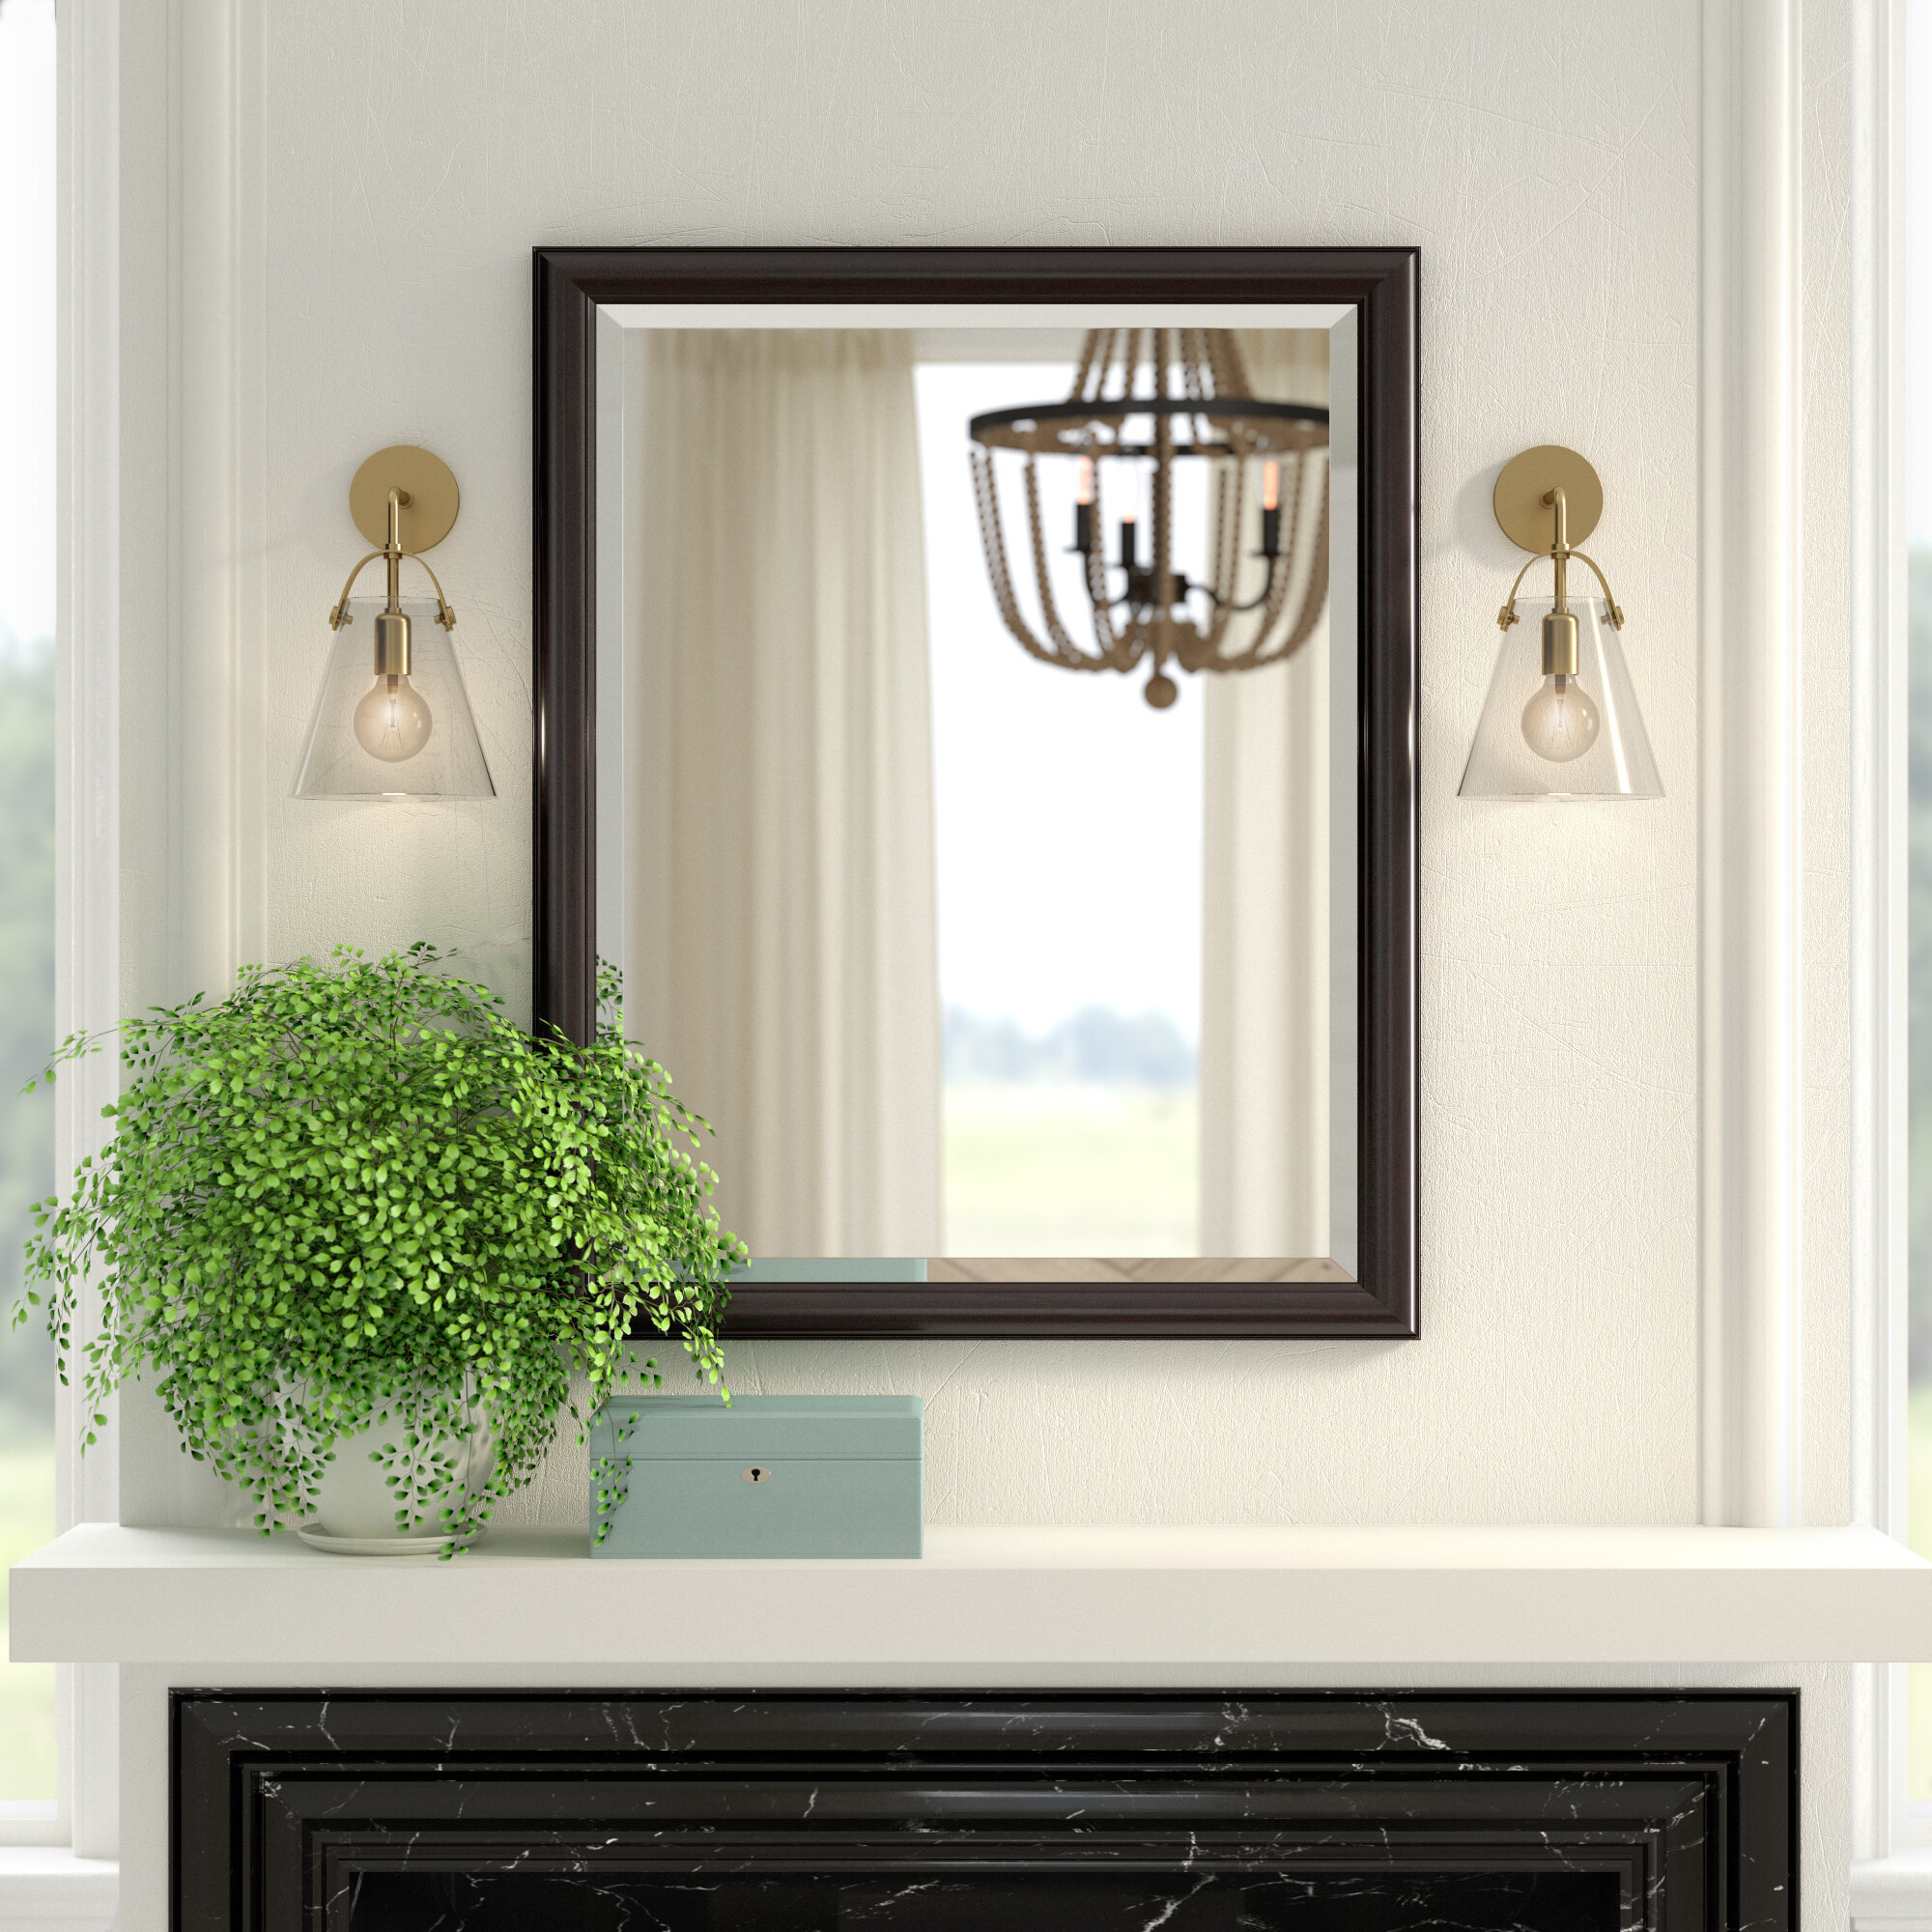 Framed Beveled Wall Mirror Throughout Rectangle Pewter Beveled Wall Mirrors (Image 11 of 20)